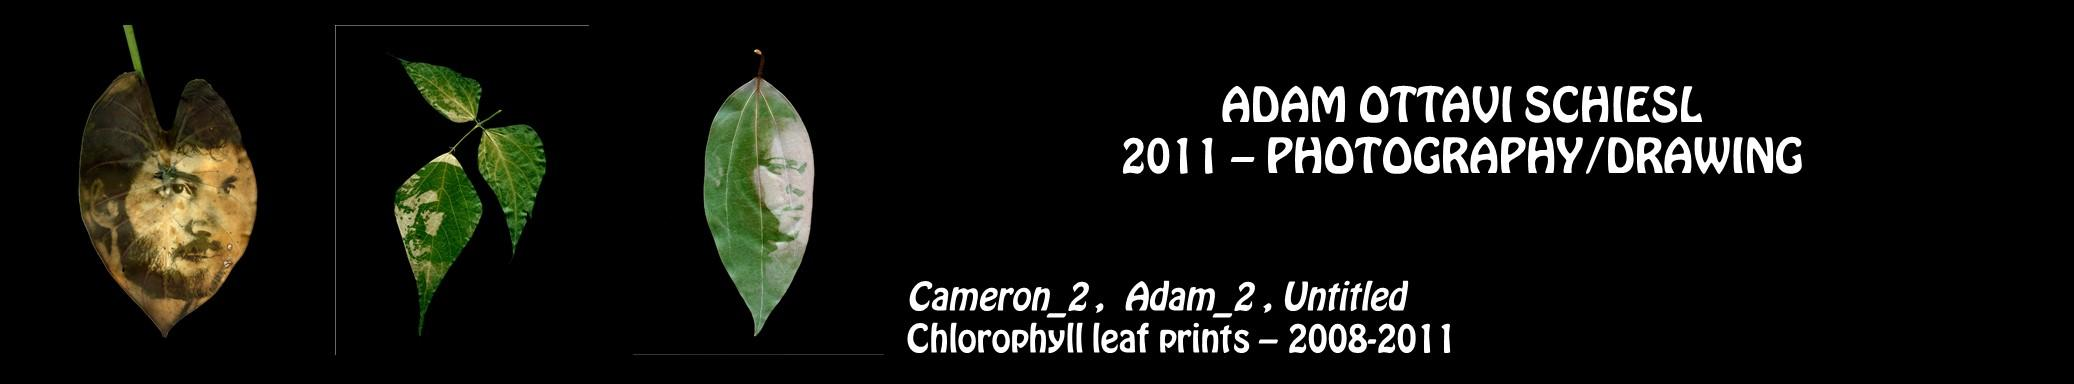 Adam Ottavi Schiesl - photography, drawing - Cameron 2, Adam 2, Untitled, Clorophyll leaf prints - 2008-2011